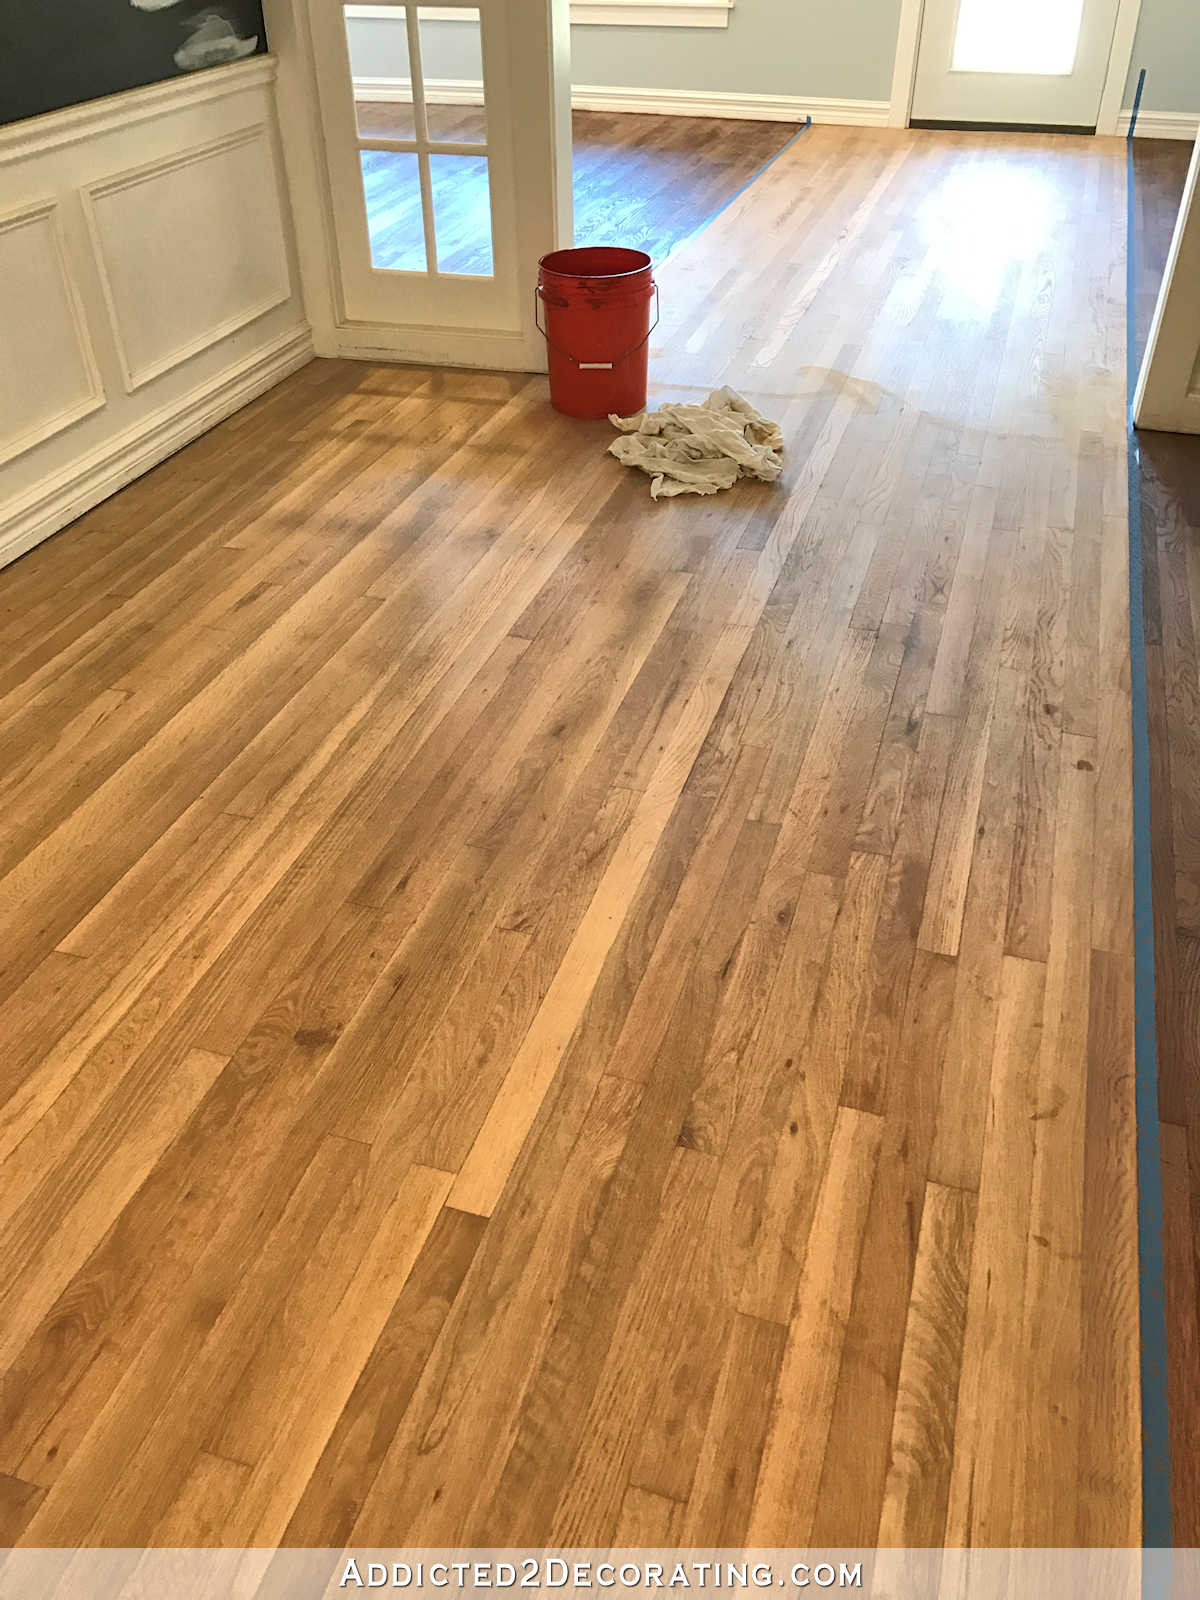 23 attractive Dark Hardwood Floors Cost 2021 free download dark hardwood floors cost of adventures in staining my red oak hardwood floors products process for staining red oak hardwood floors 8 entryway and music room wood conditioner